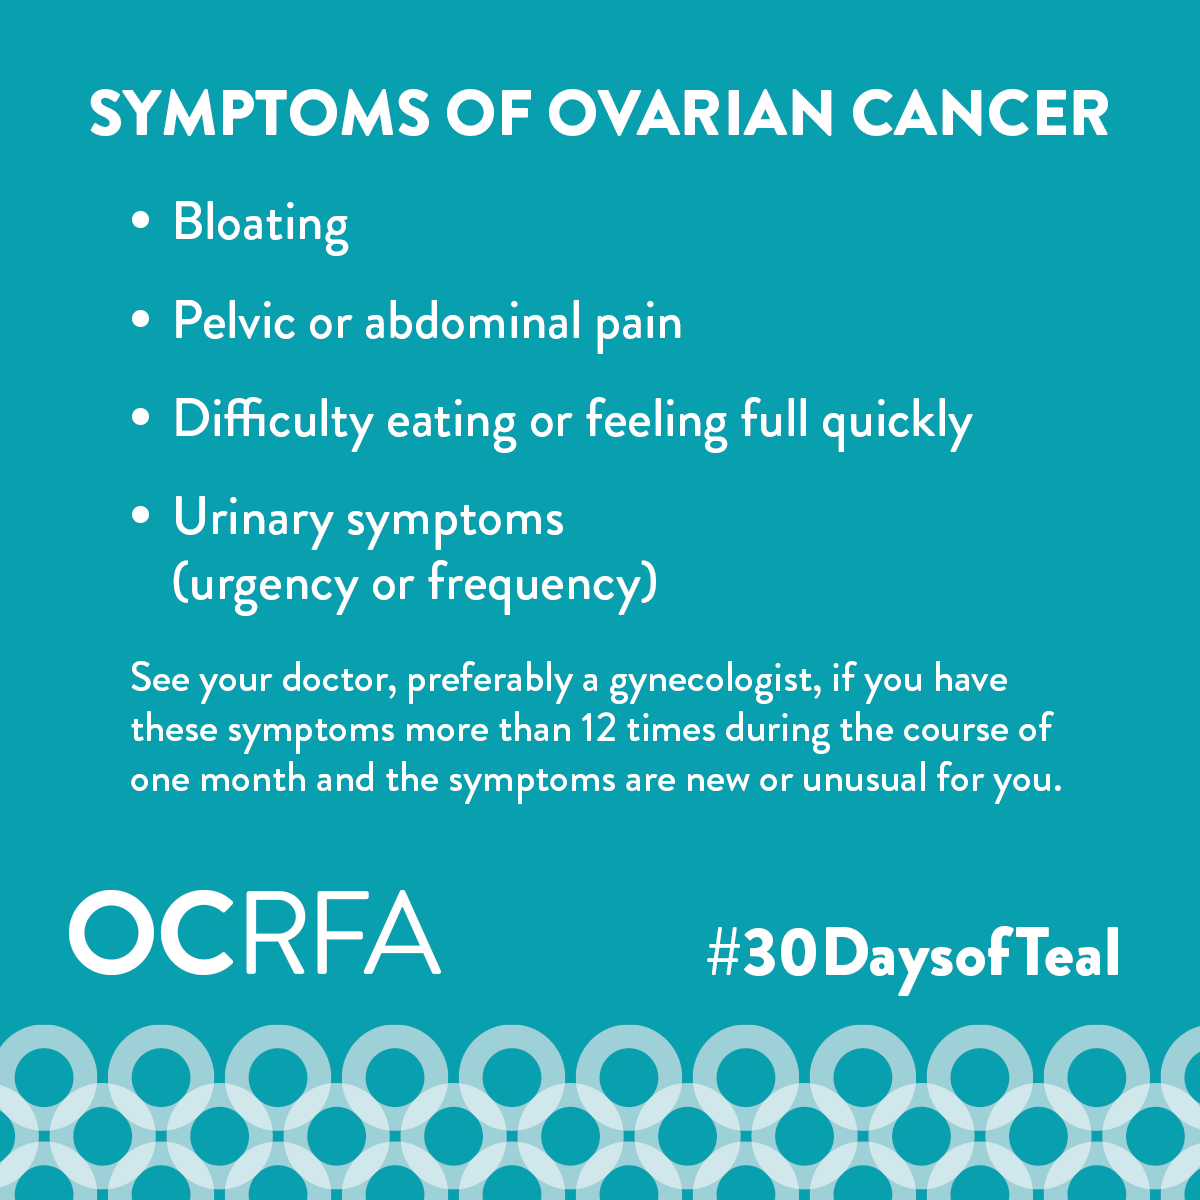 september is ovarian cancer awareness month  30daysofteal